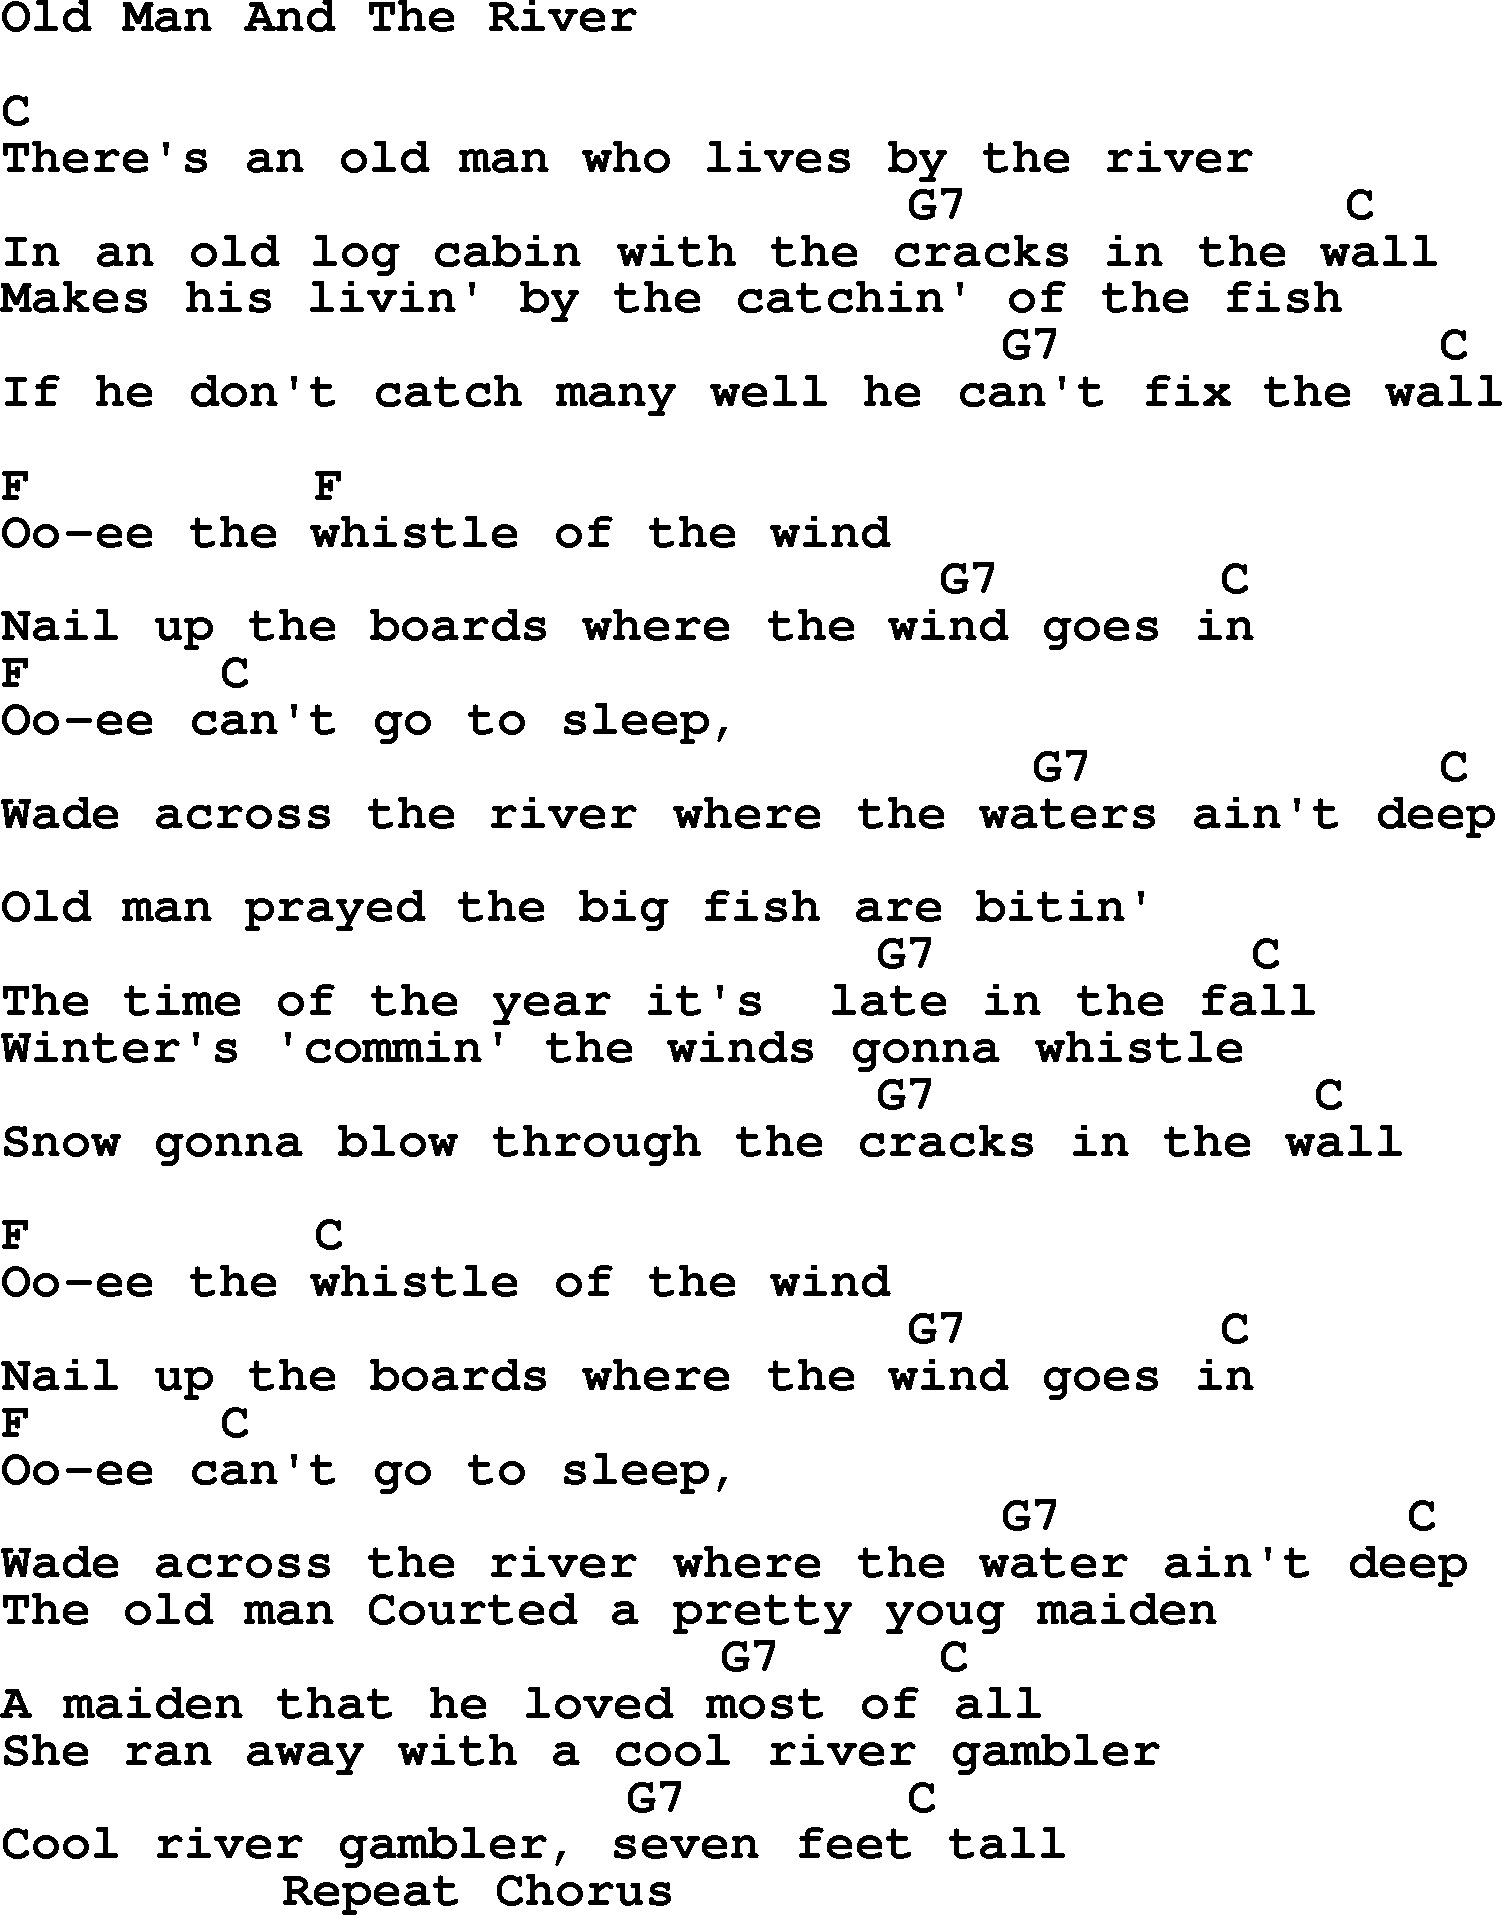 Old Man Chords Hank Williams Song Old Man And The River Lyrics And Chords